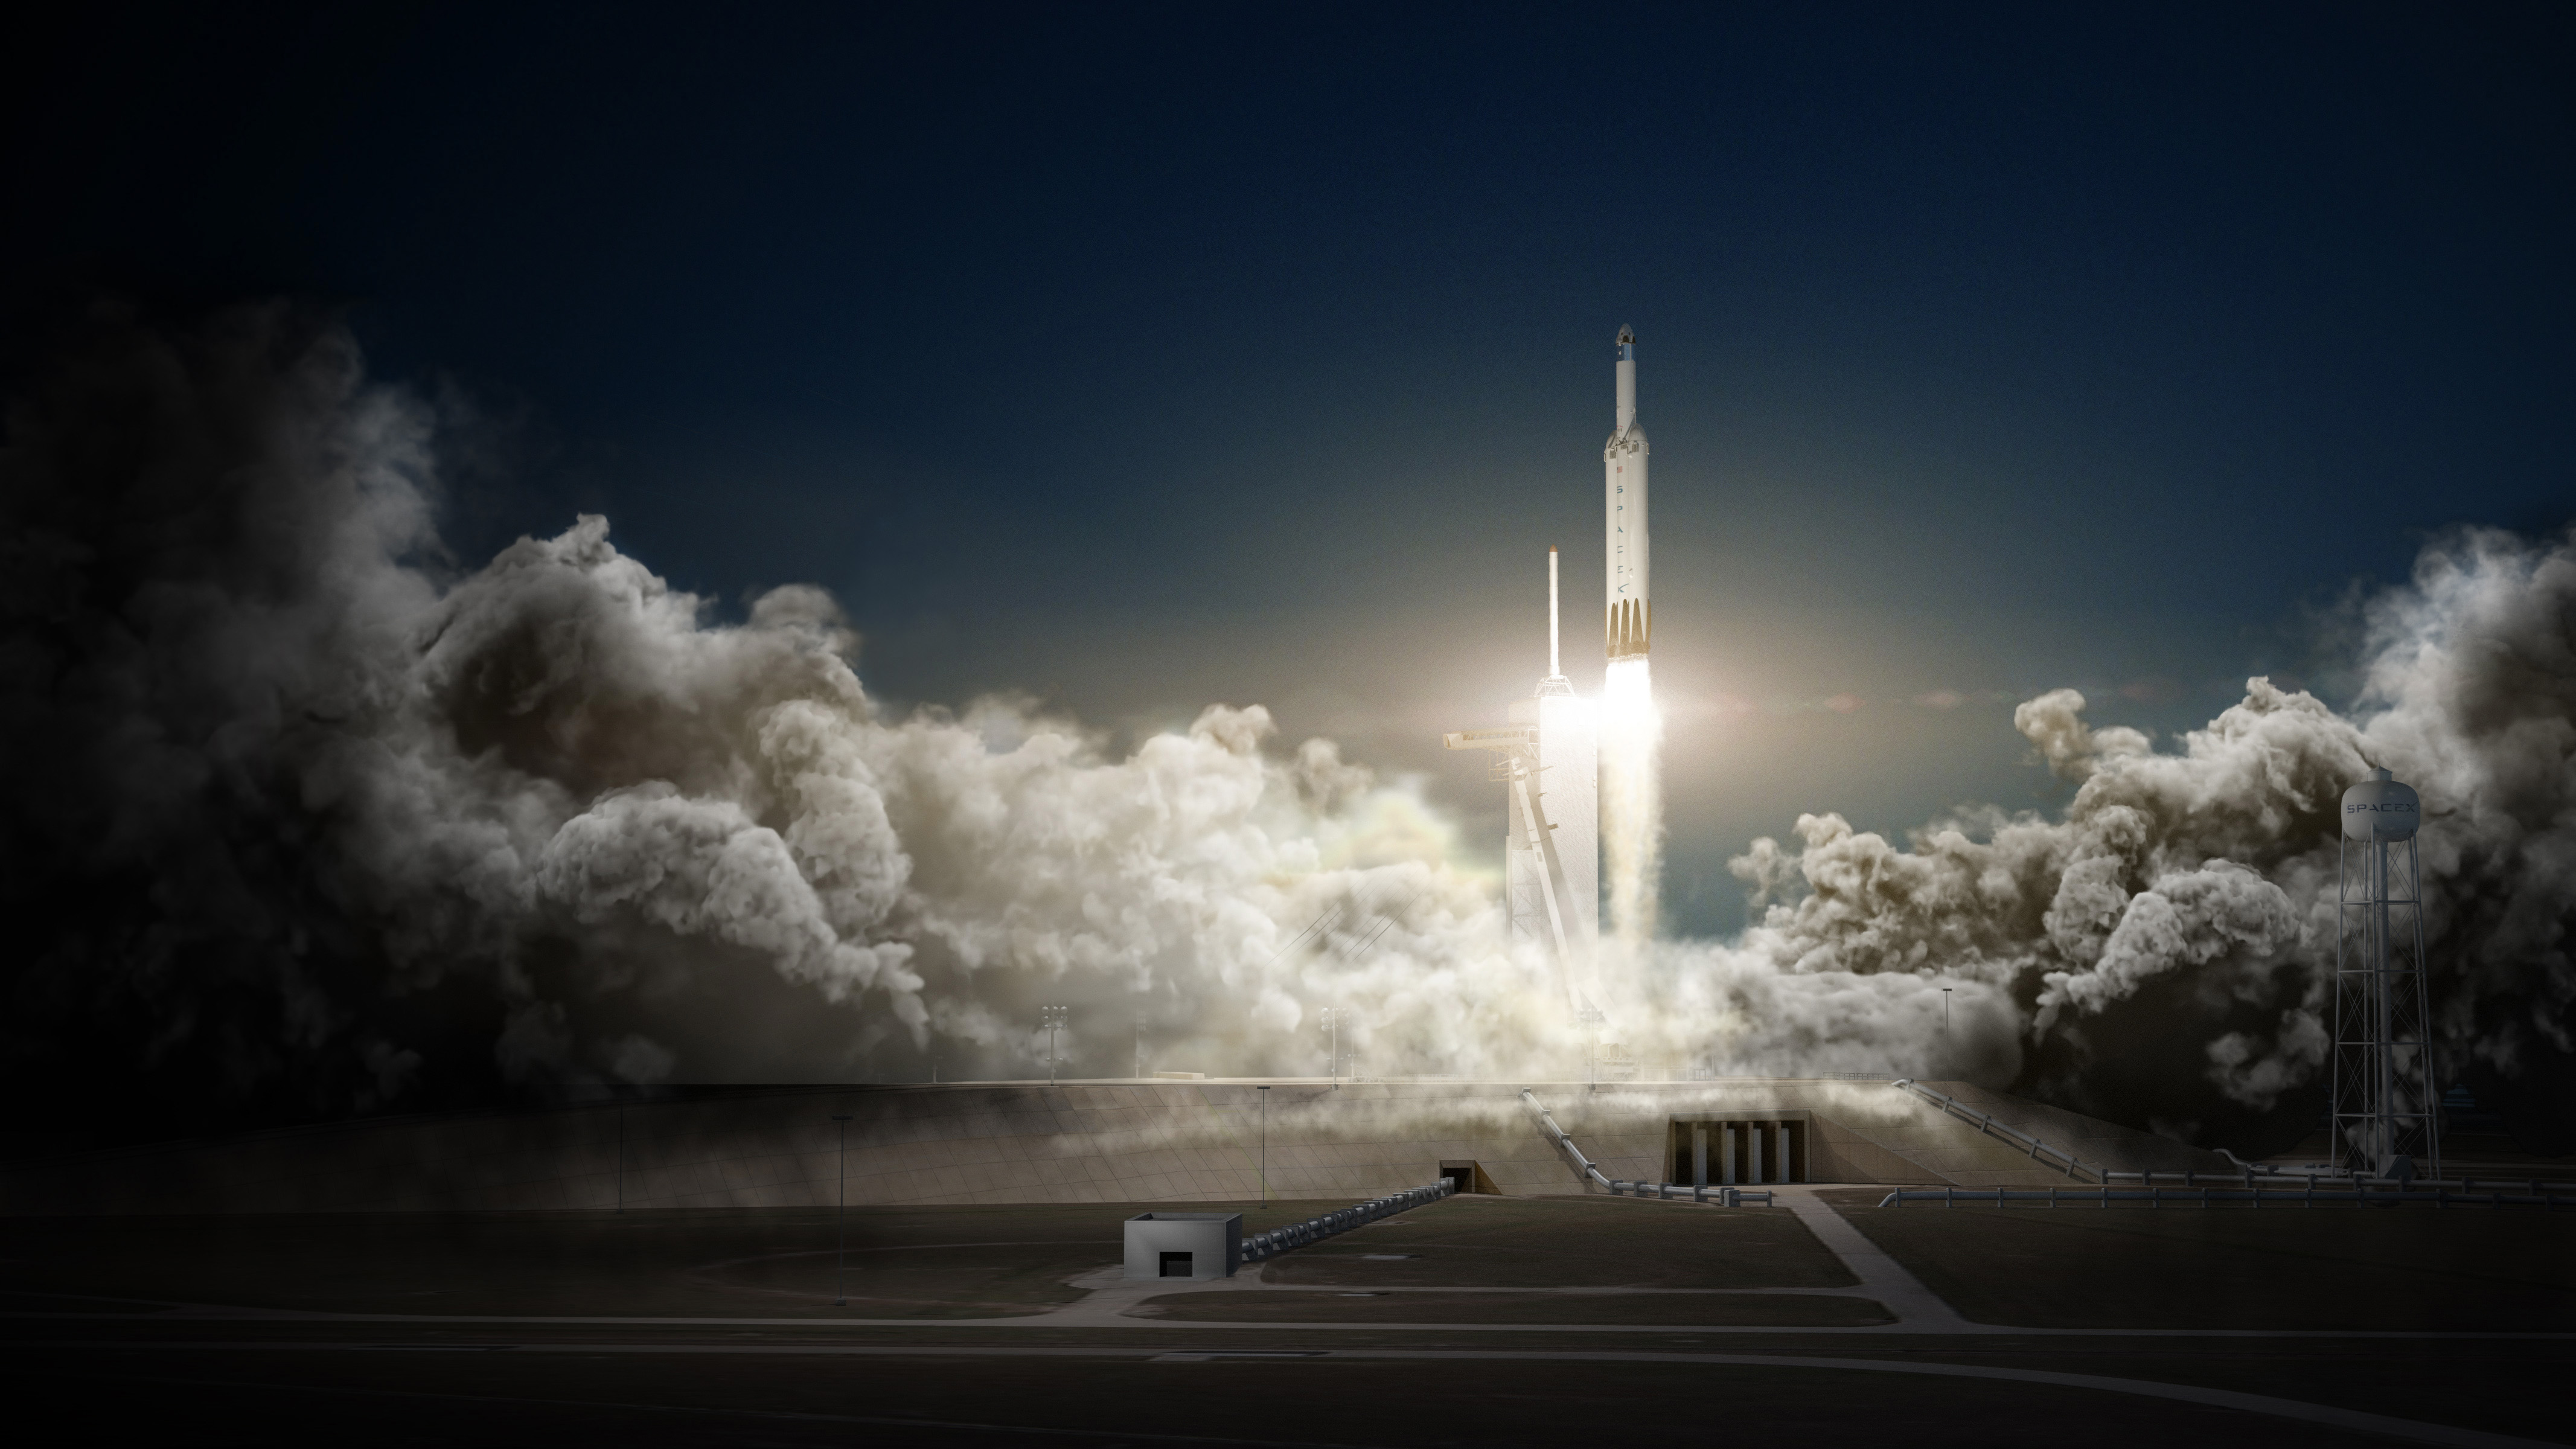 elon musk says spacex falcon heavy rocket s test flight in november. Black Bedroom Furniture Sets. Home Design Ideas